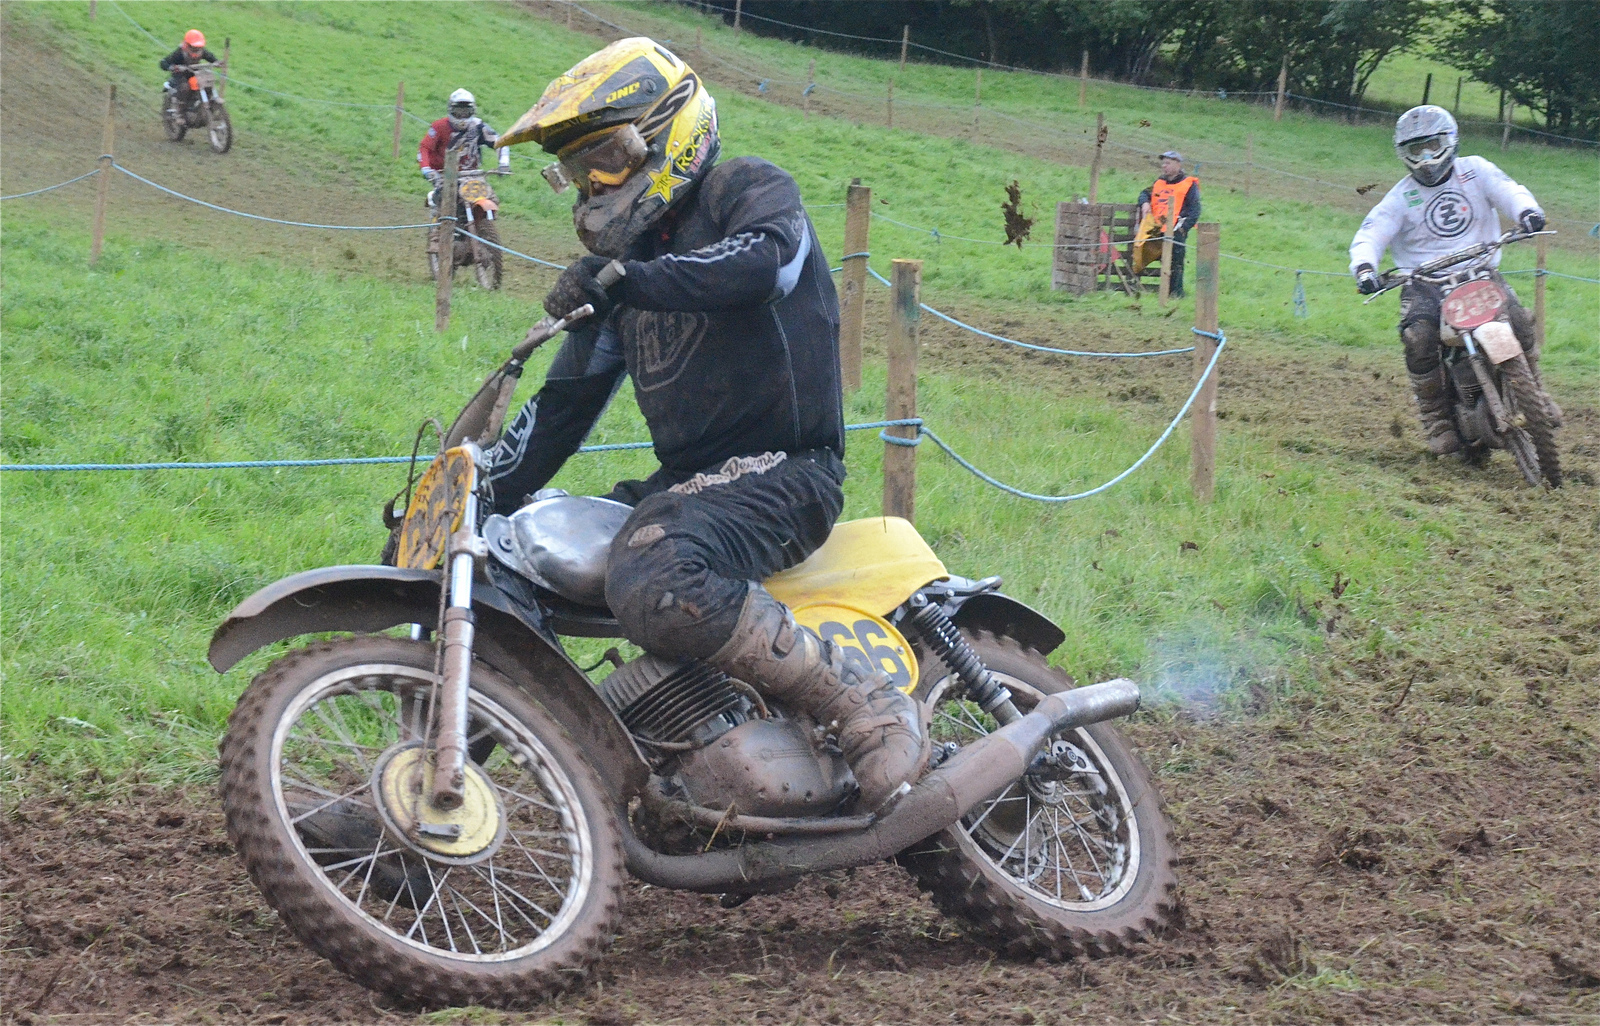 Llanthony Classic Scramble Photos September 2015 classicdirtbikerider.com..33